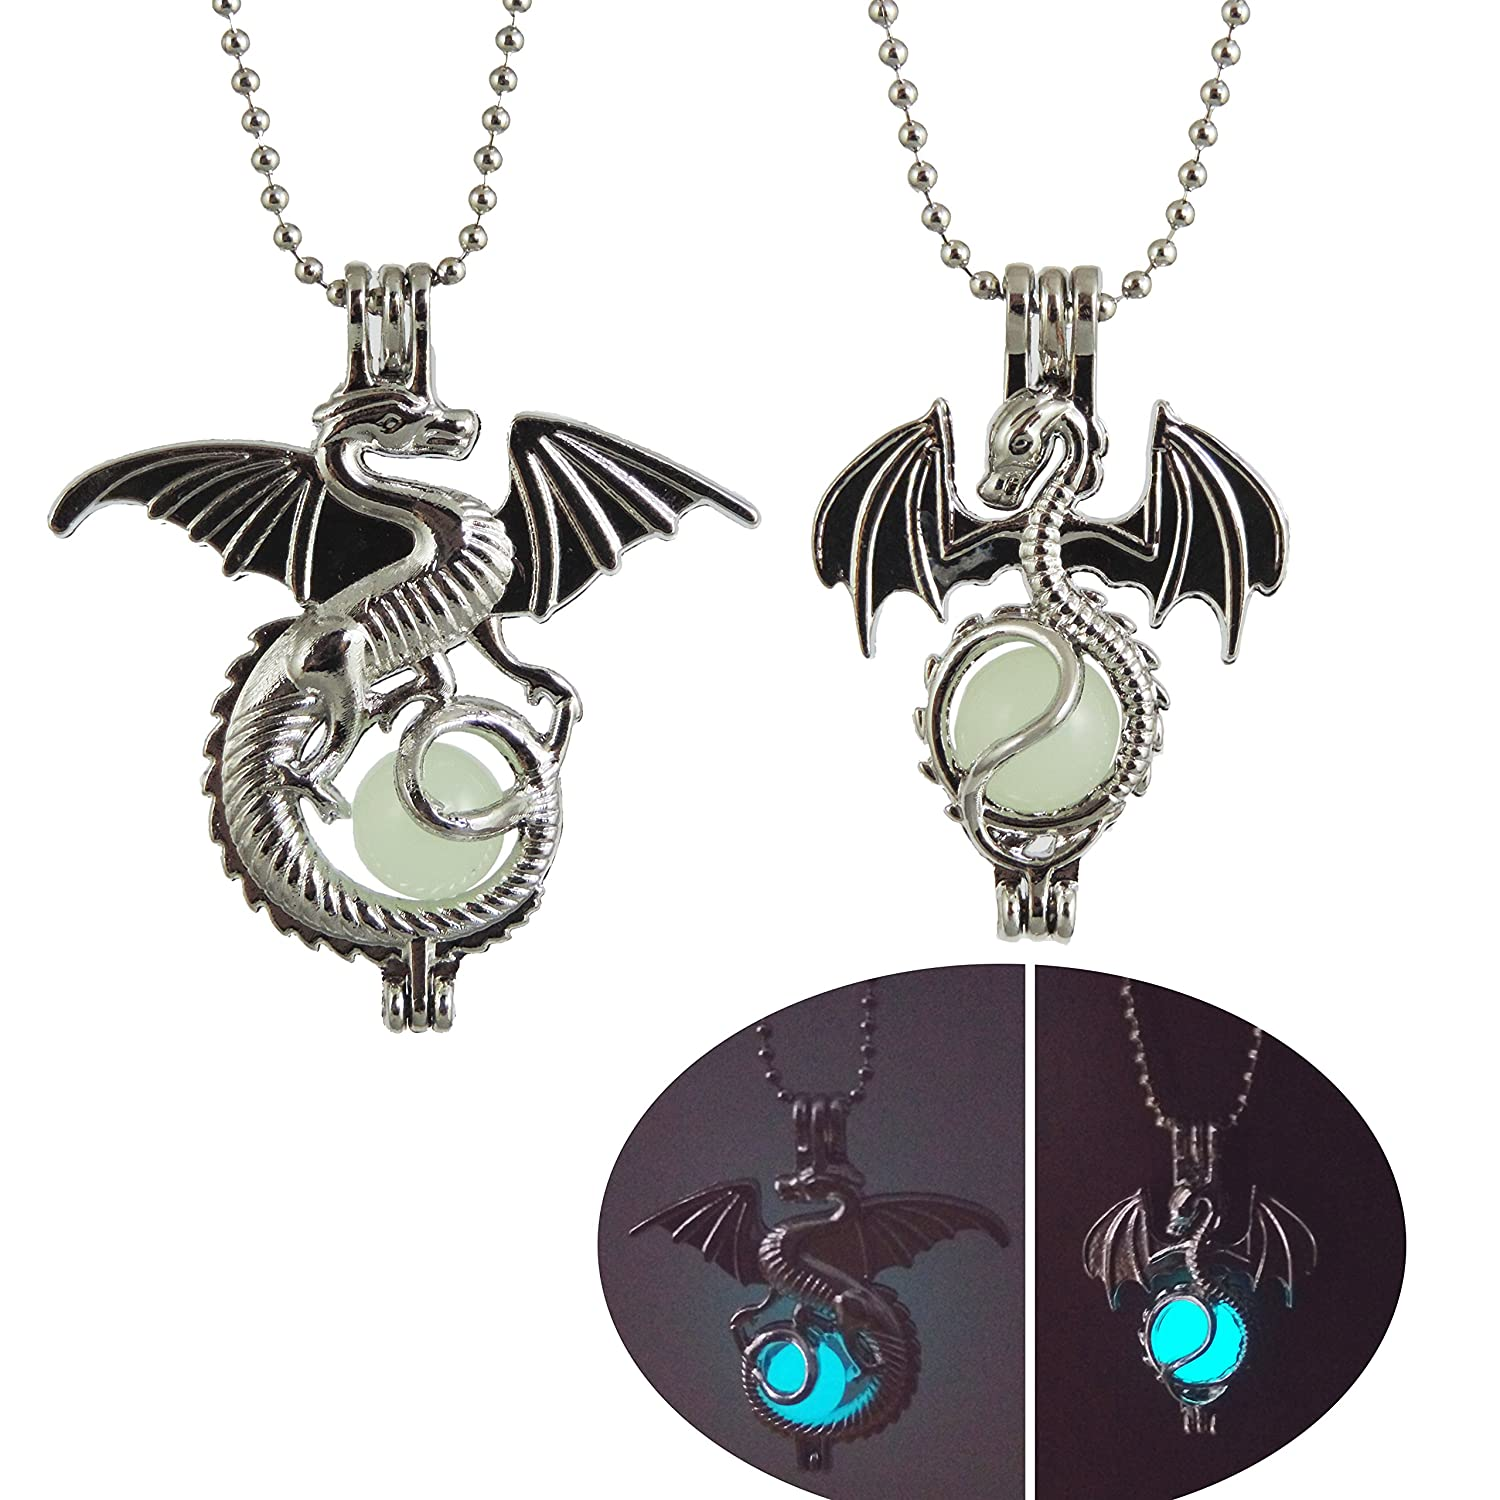 2 Pcs Mix Glowing Dragon Luminous Beads Pendant Necklace Alloy Jewelry Blue Green Linght 18 Inches dongxin 4336820584